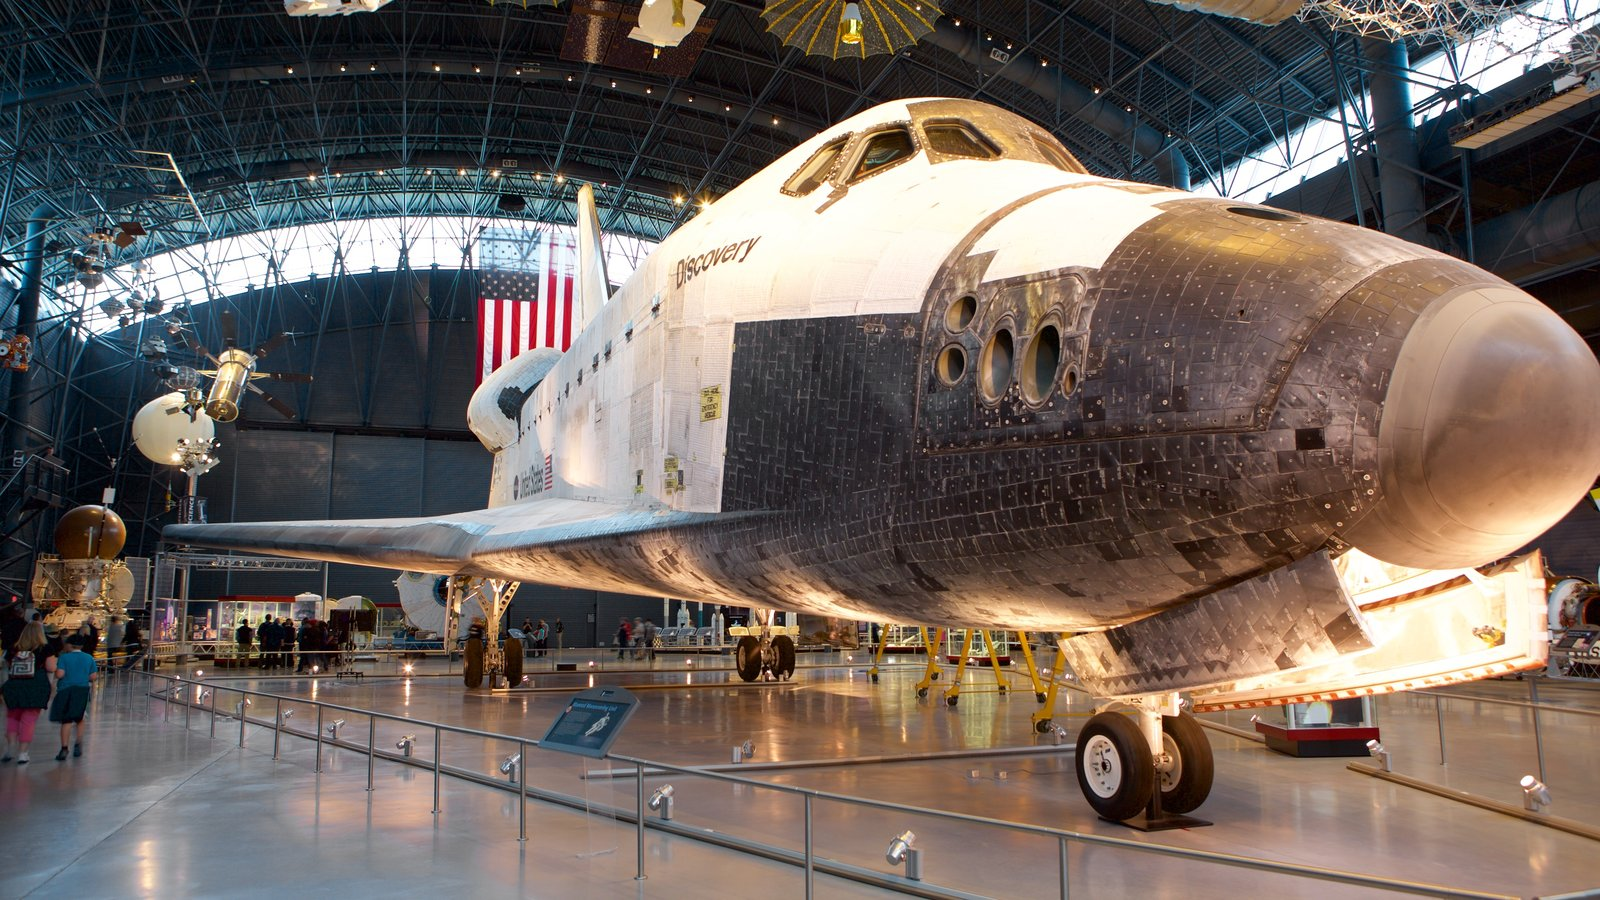 National Air and Space Museum Steven F. Udvar-Hazy Center showing interior views and aircraft